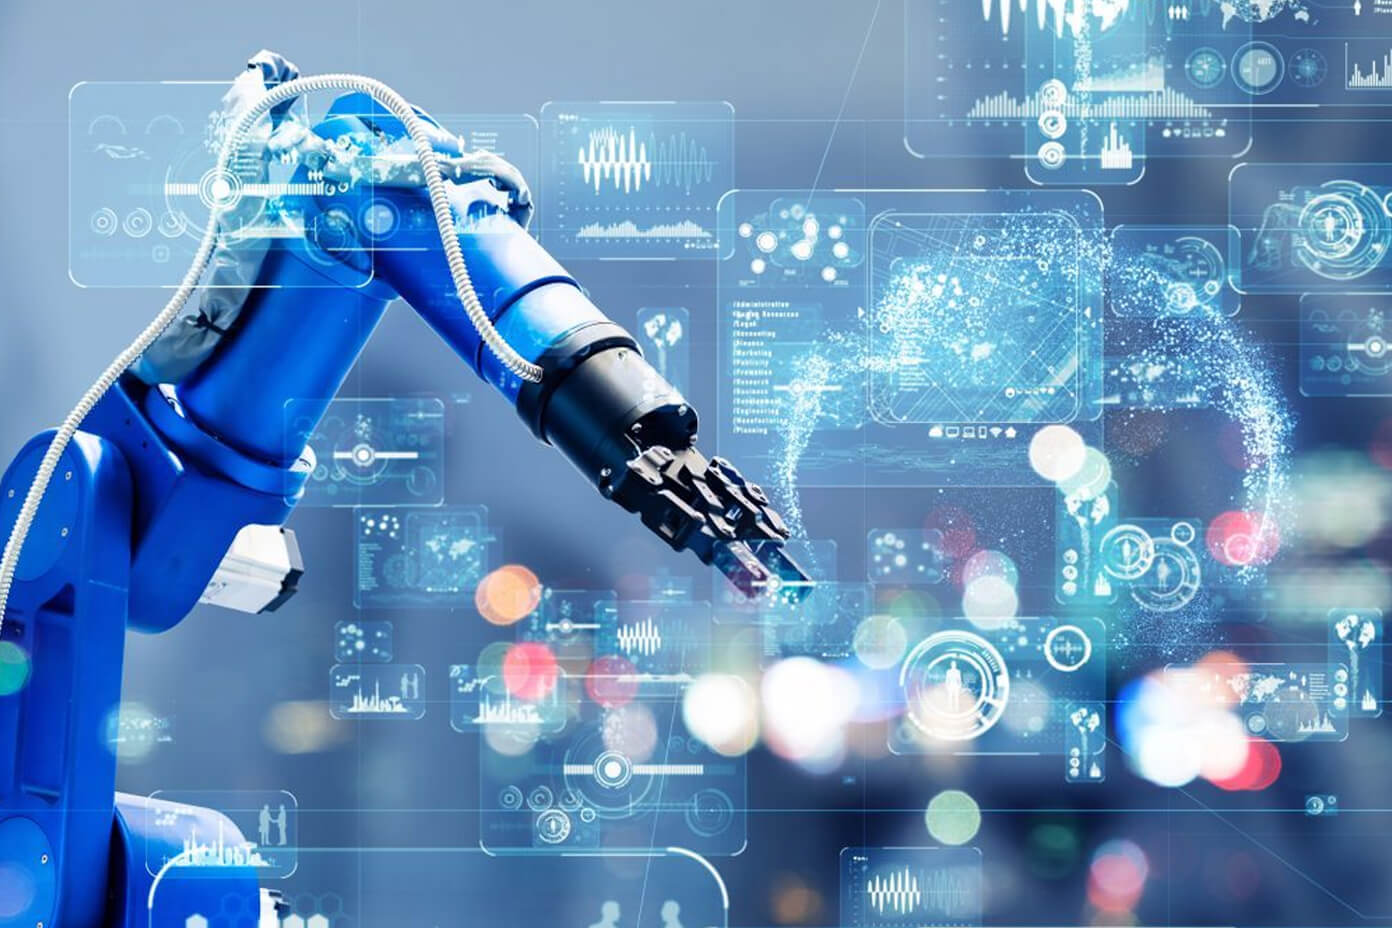 IIOT Use Cases in Manufacturing, Benefits & Challenges